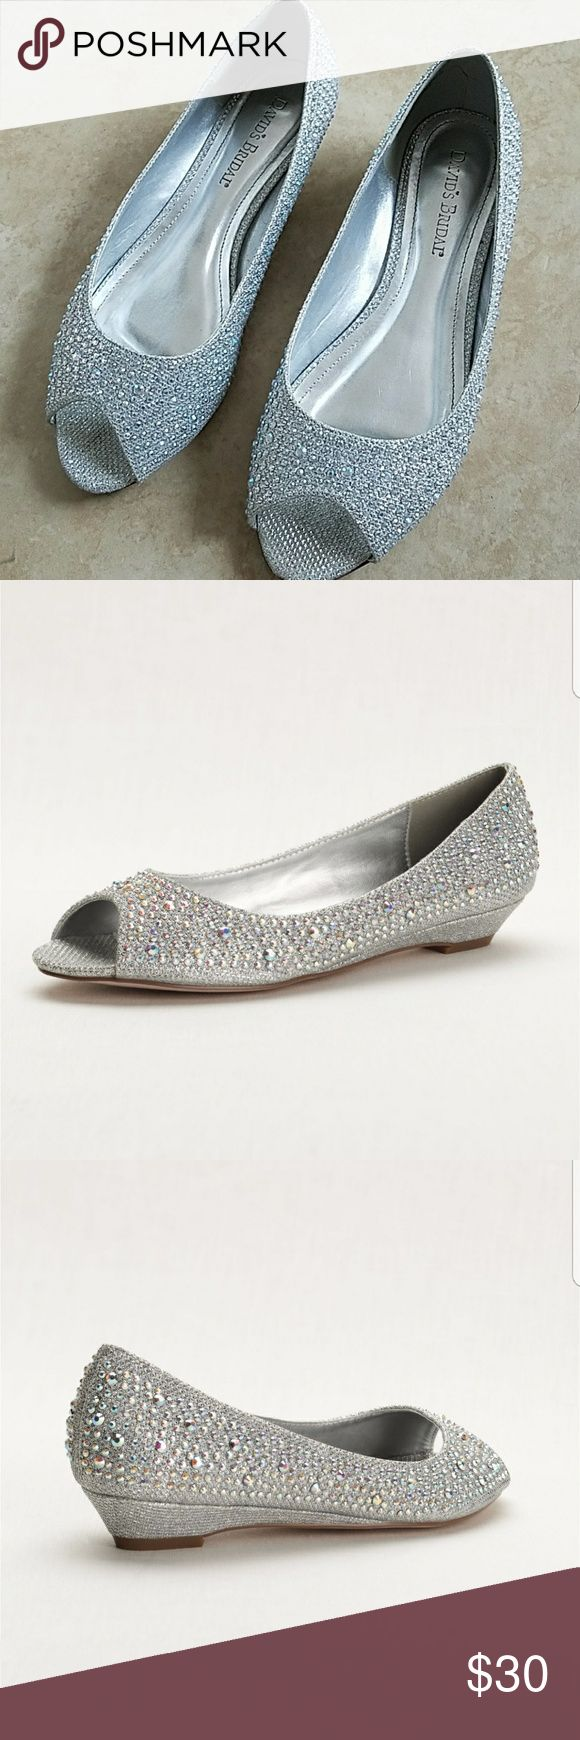 """David's Bridal peep toe wedge with Aurora Borealis Beautiful 1"""" silver wedges from David's Bridal covered with Aurora Borealis crystals. Only worn once. Size 7.5. David's Bridal Shoes Wedges"""